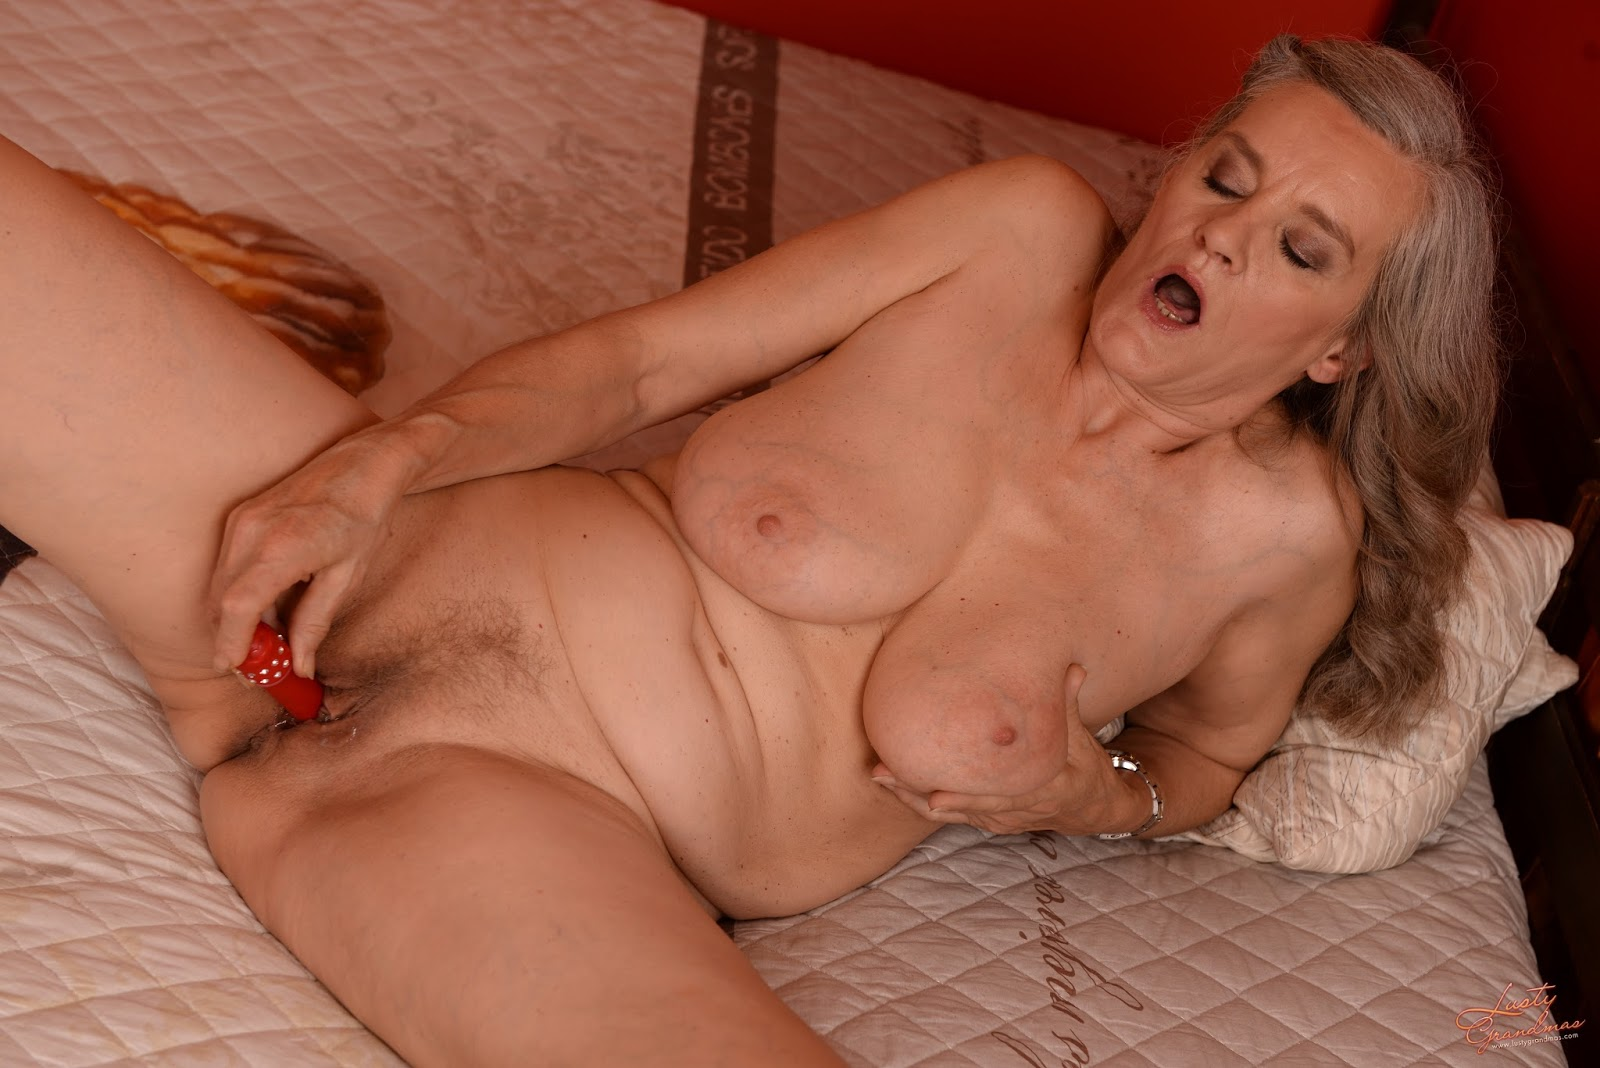 Old Granny Fuck Tube archive of old women granny sex new hot pictures and video